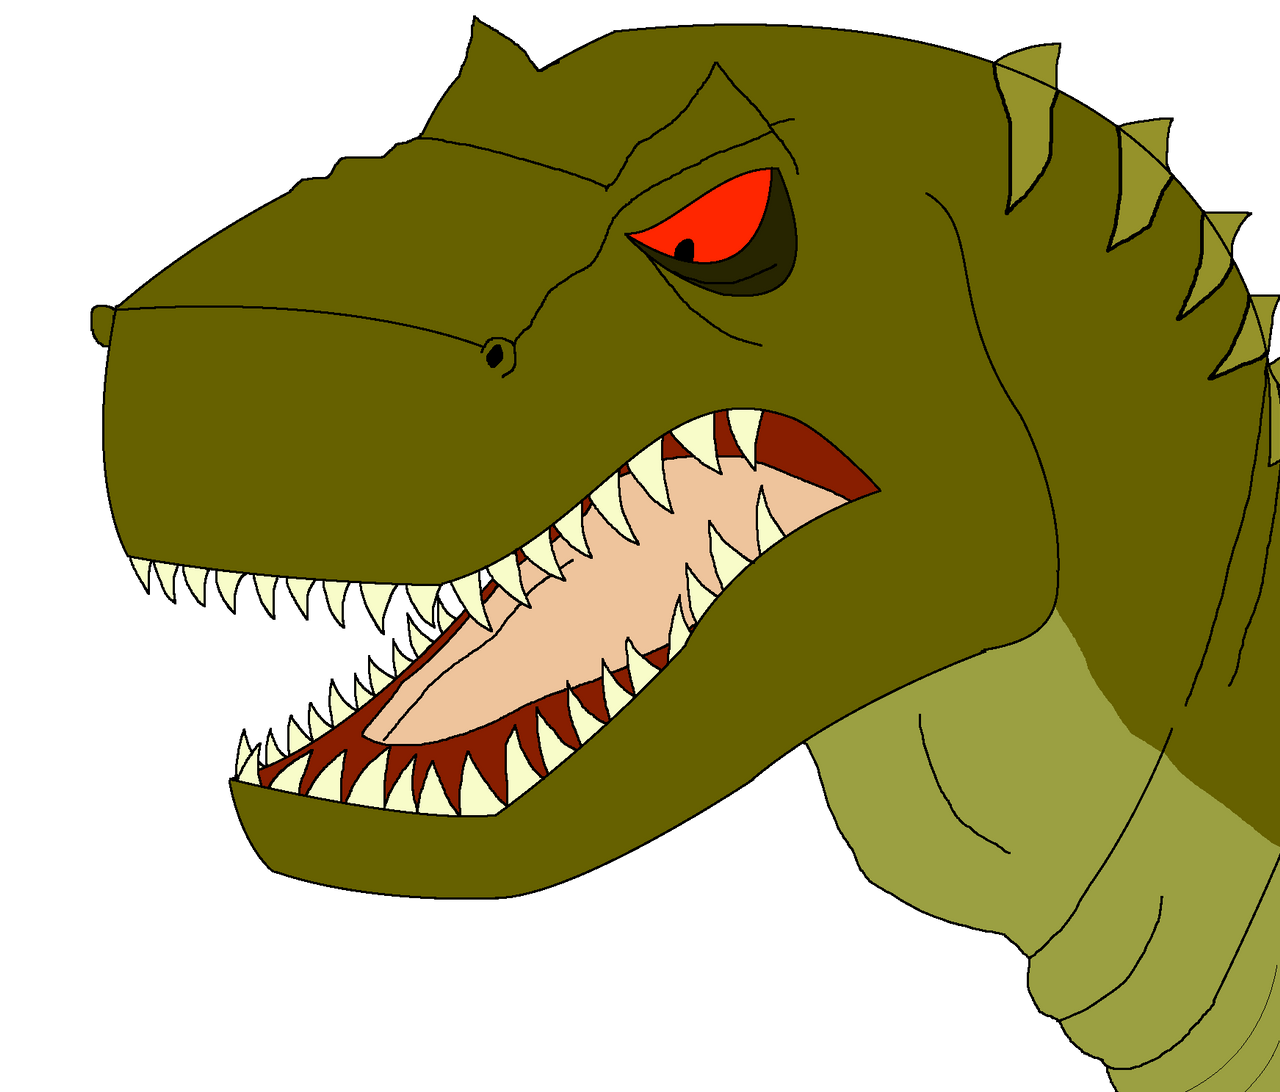 Plated Sharptooth Bust (Colored) by Asuma17 on DeviantArt